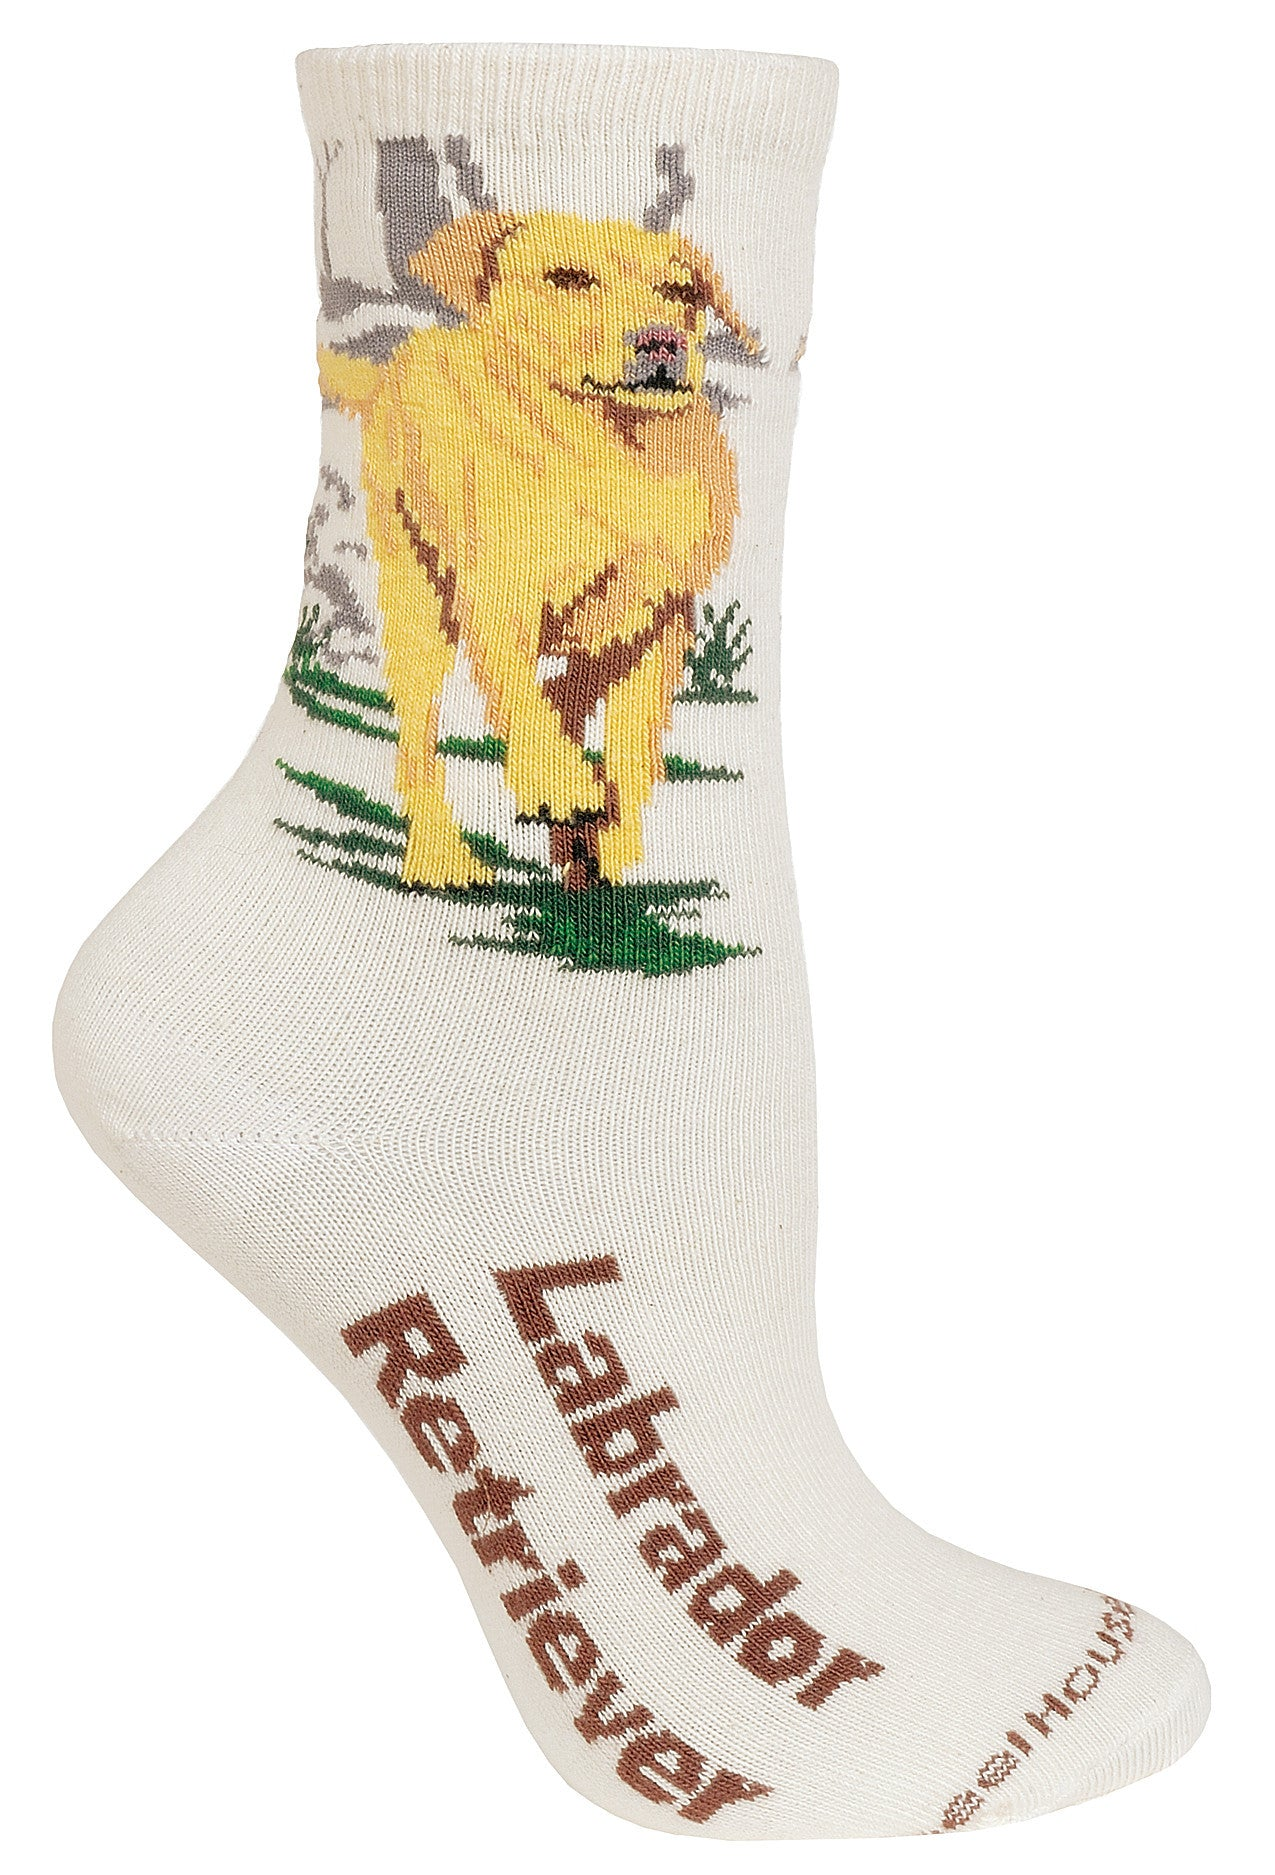 Labrador, Yellow on Natural Socks